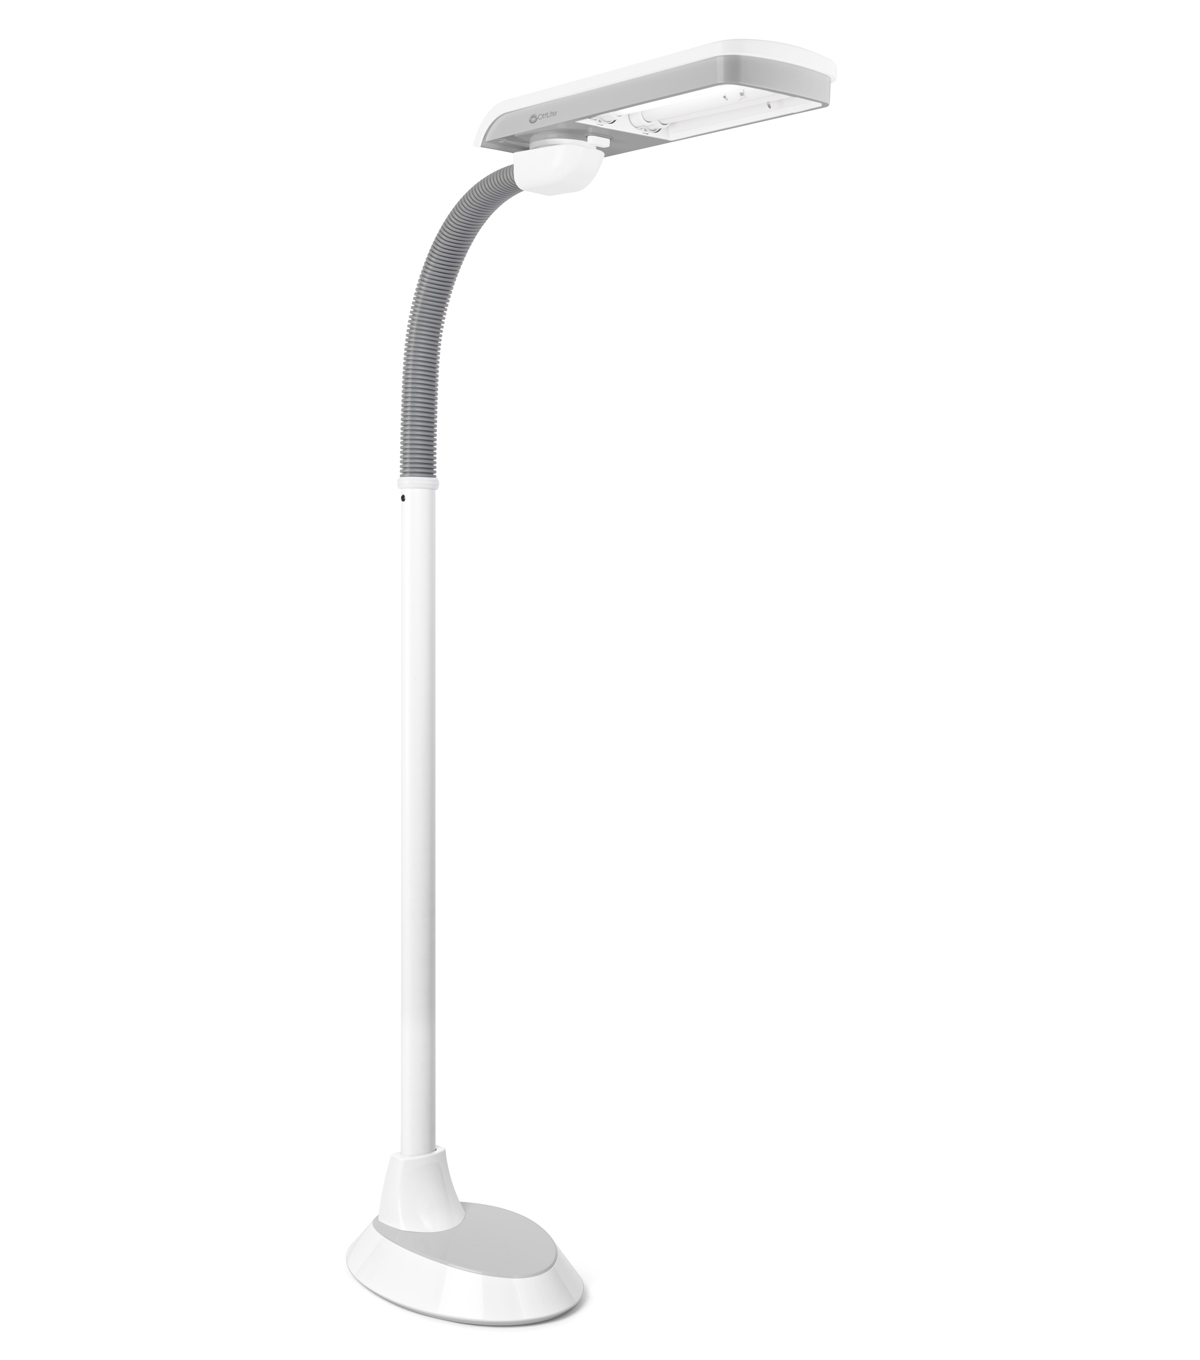 OttLite 36W Floor Lamp